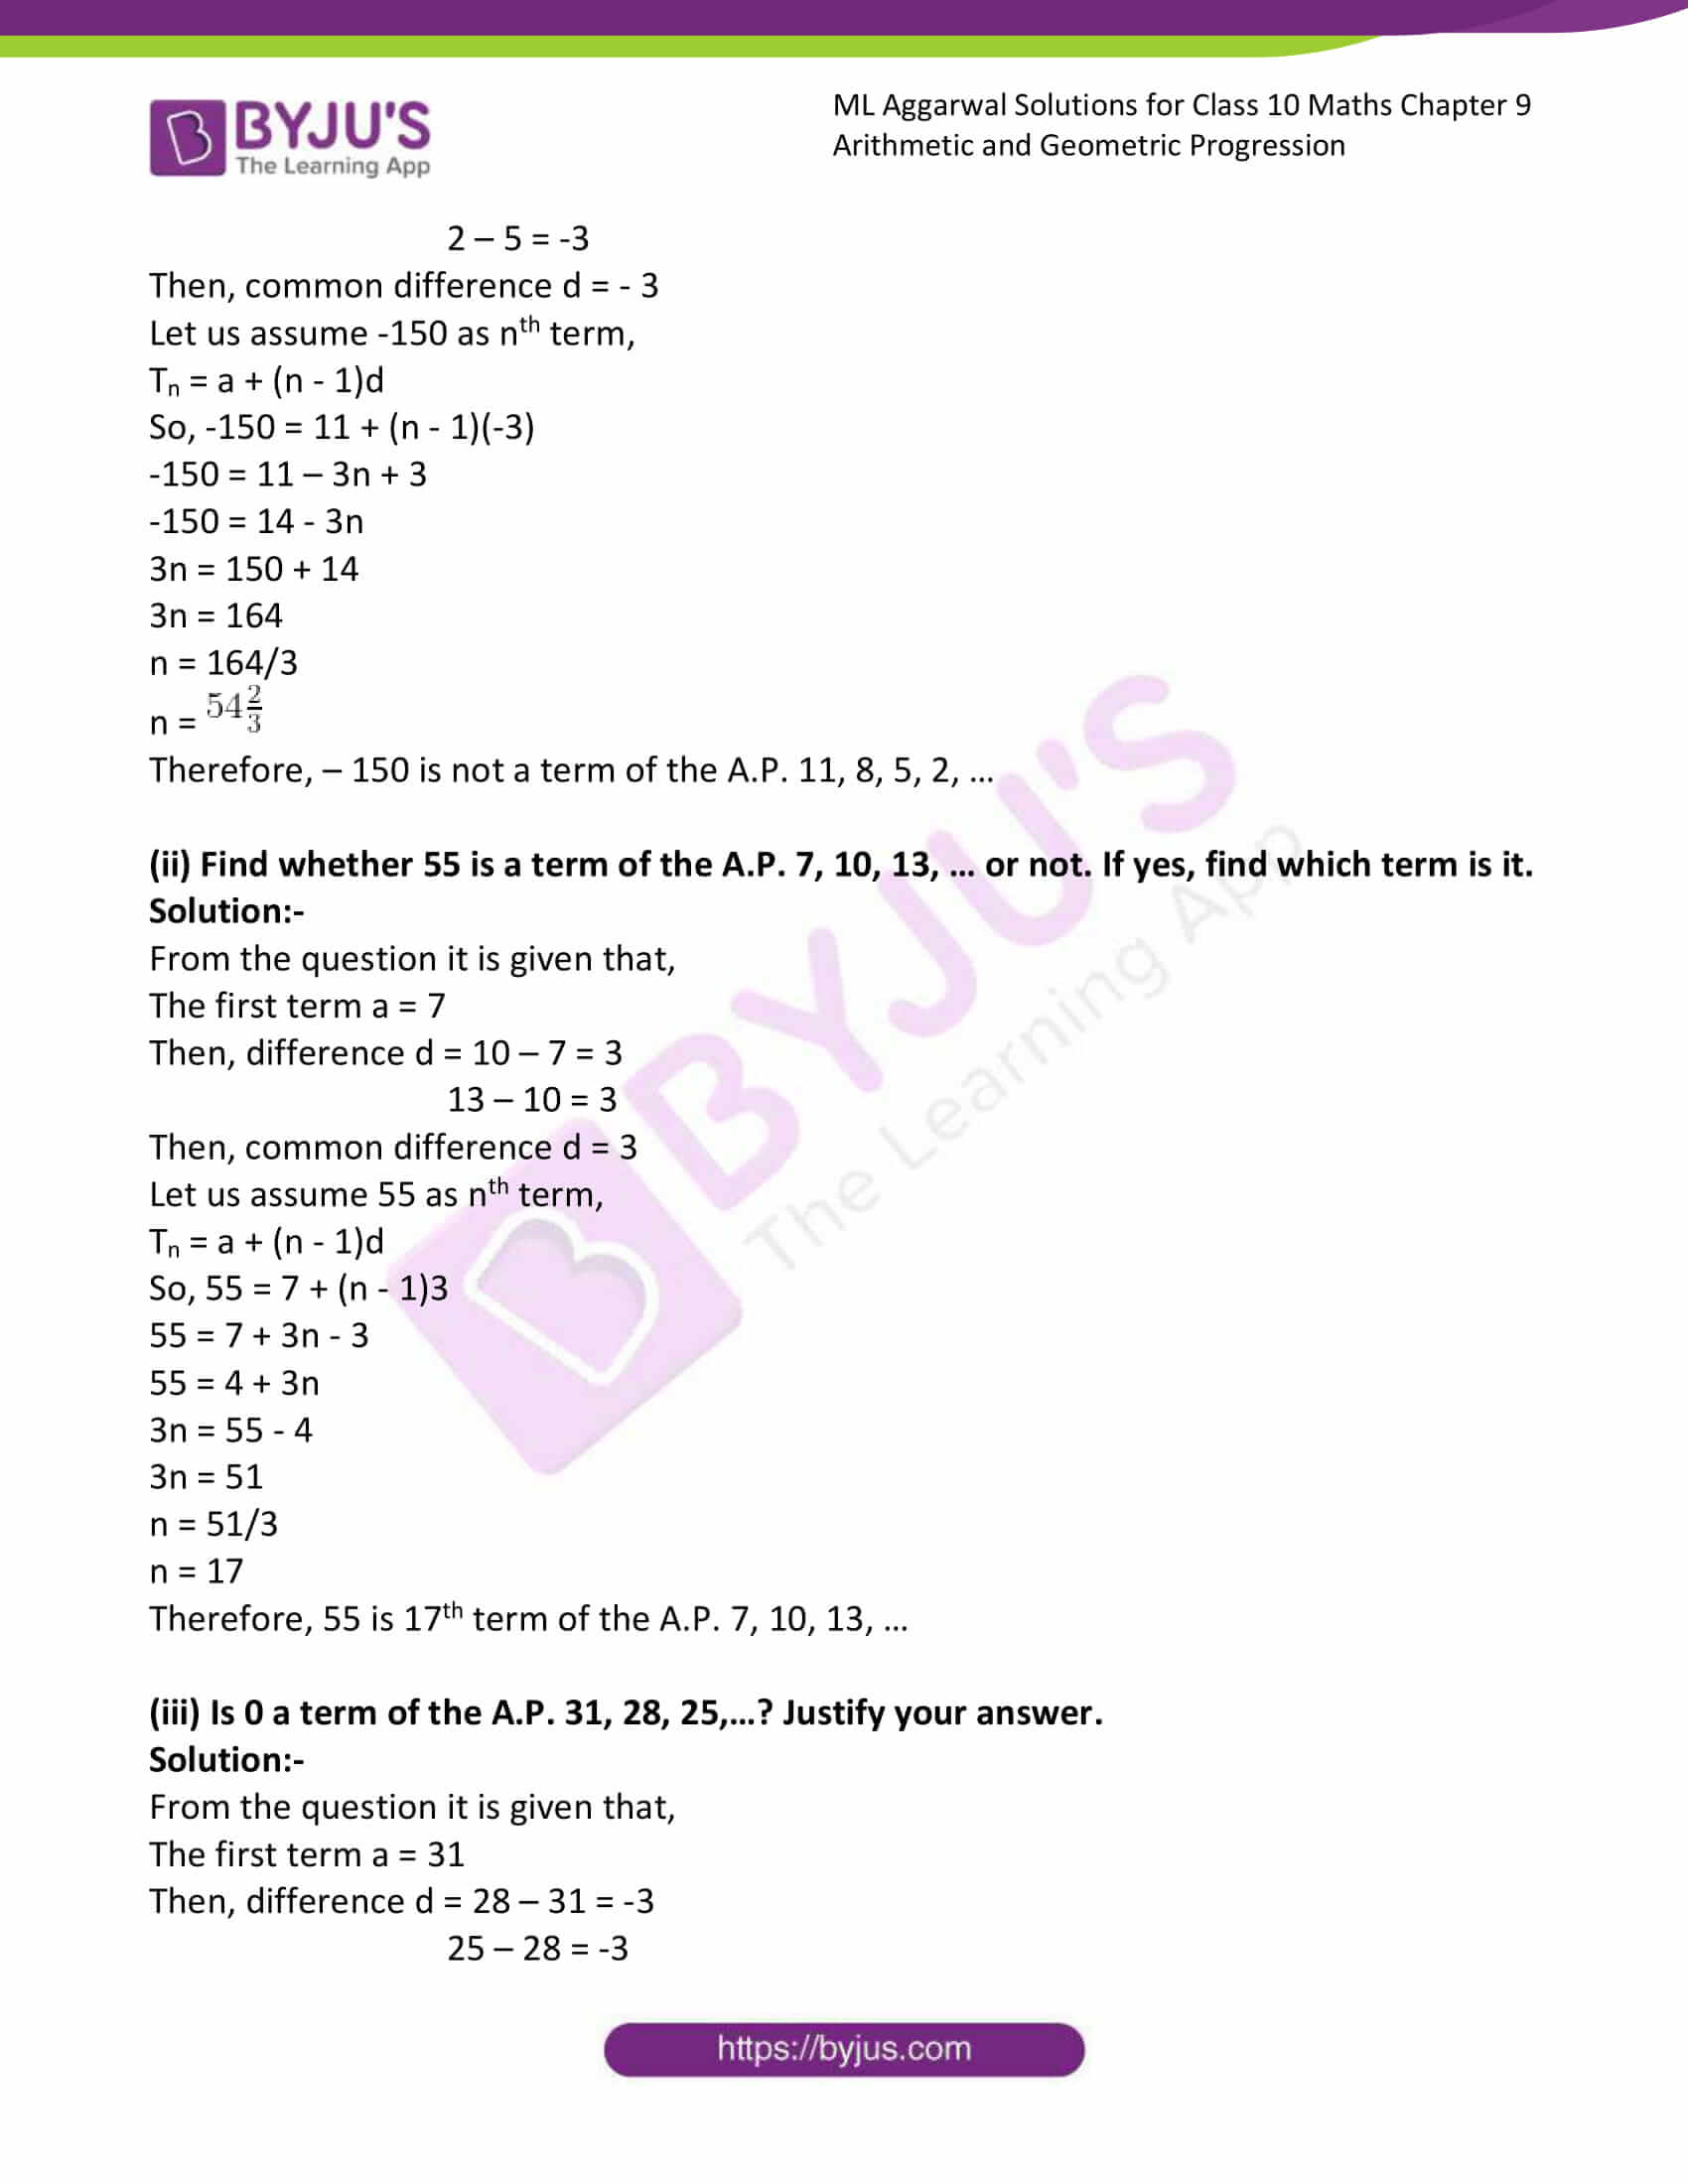 ml aggarwal solutions class 10 maths chapter 9 11